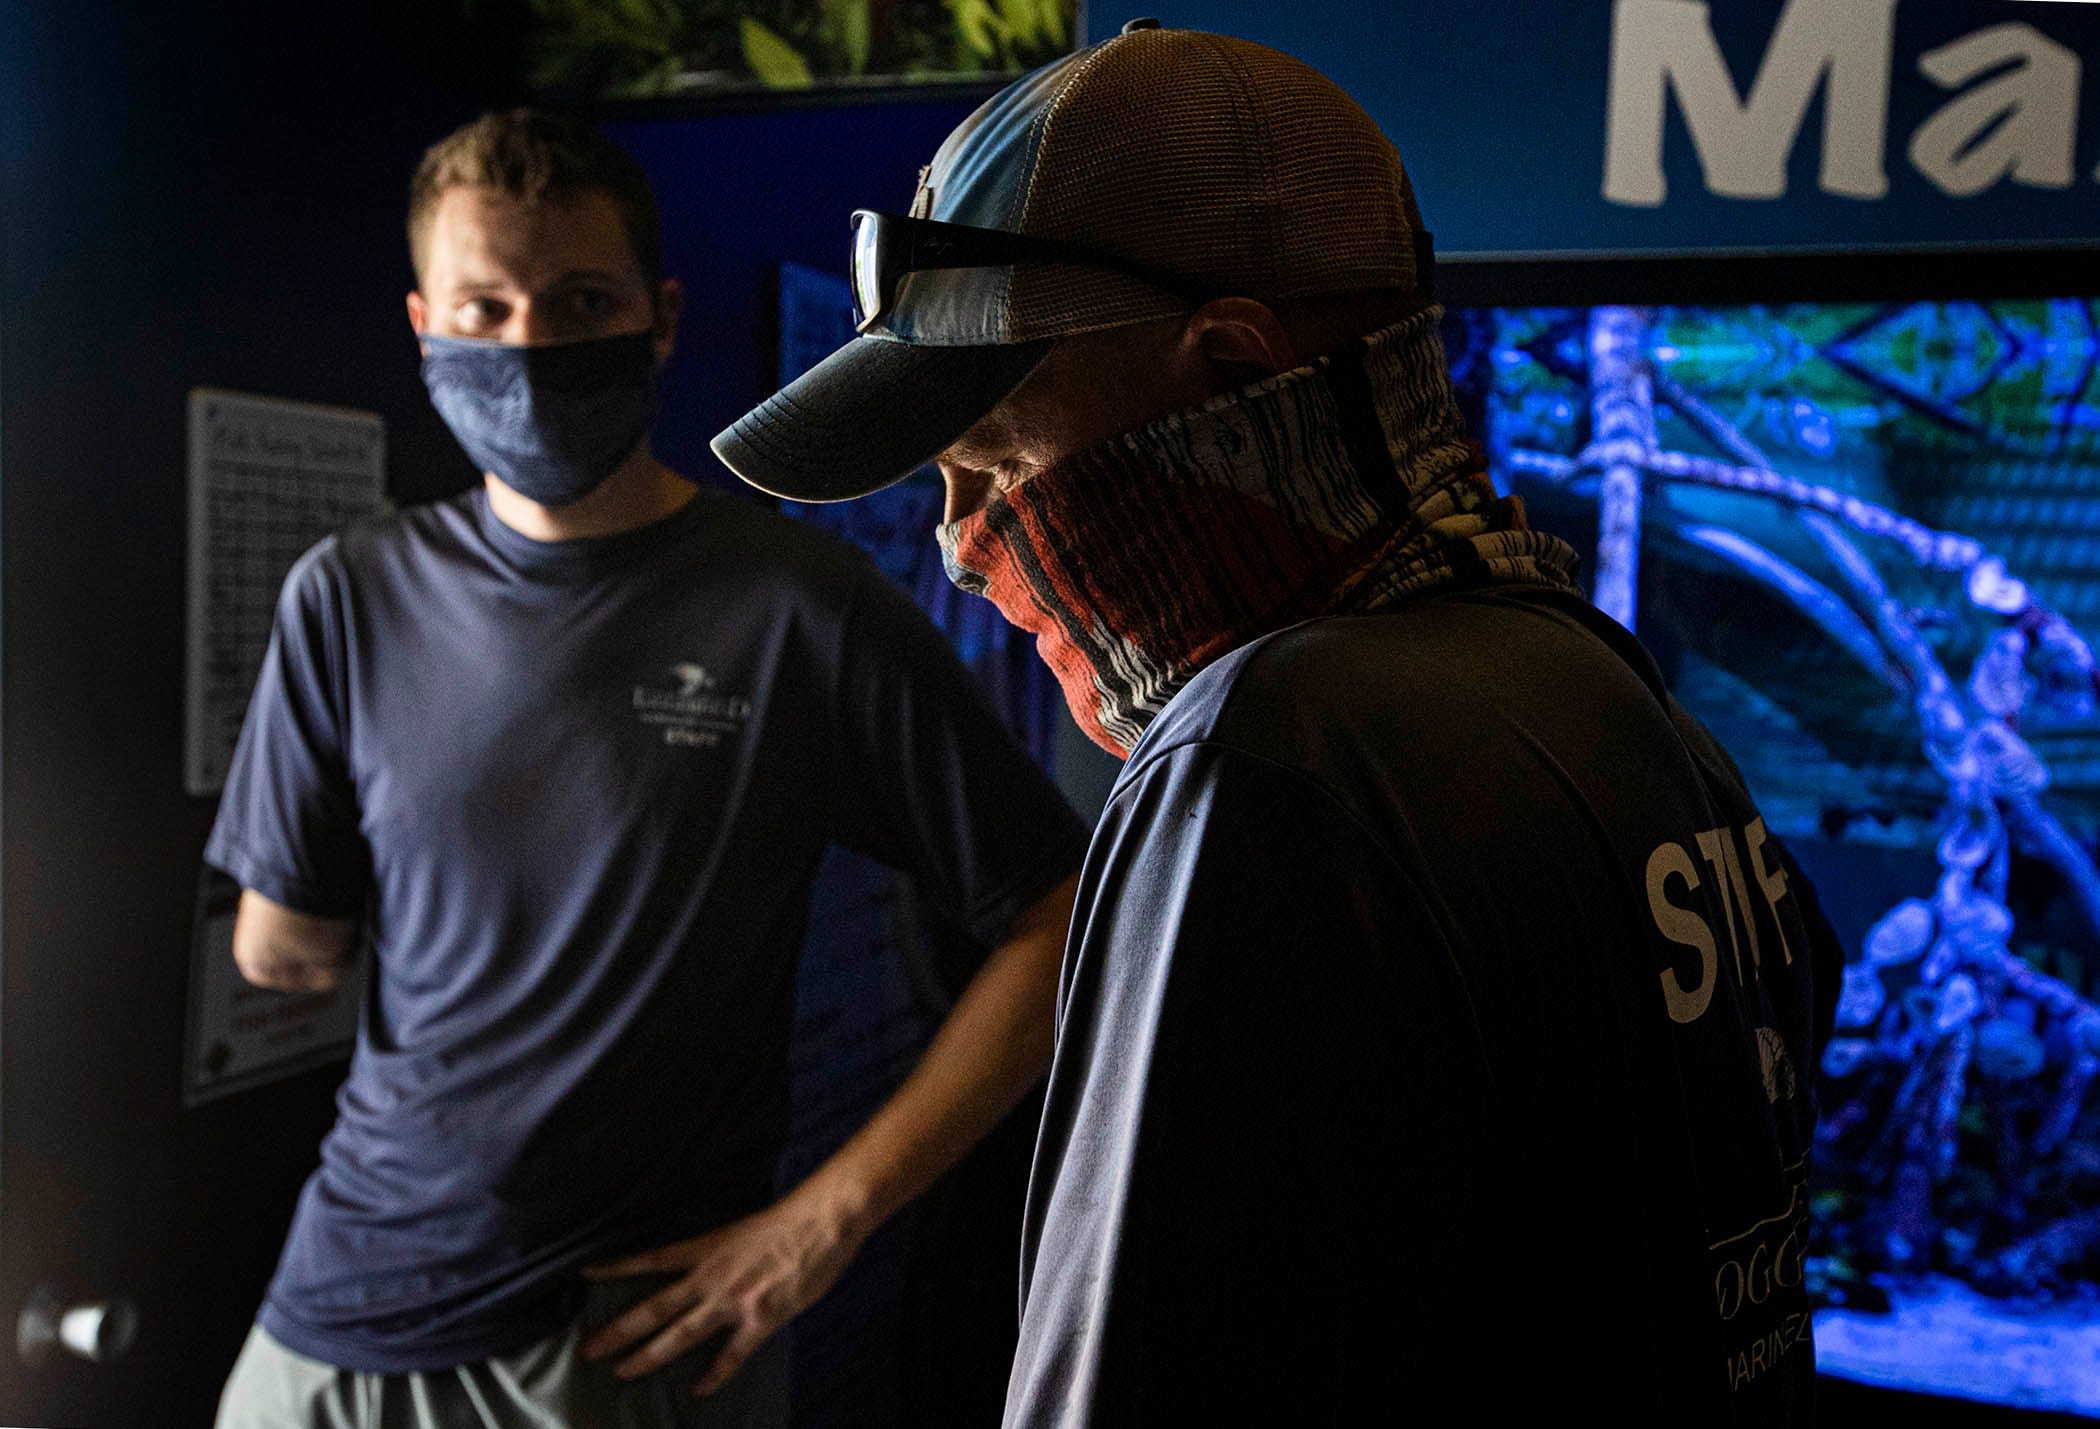 Andy Earl, right, and co-worker Carter Viss on Aug. 5 at Loggerhead Marinelife Center in Juno Beach.